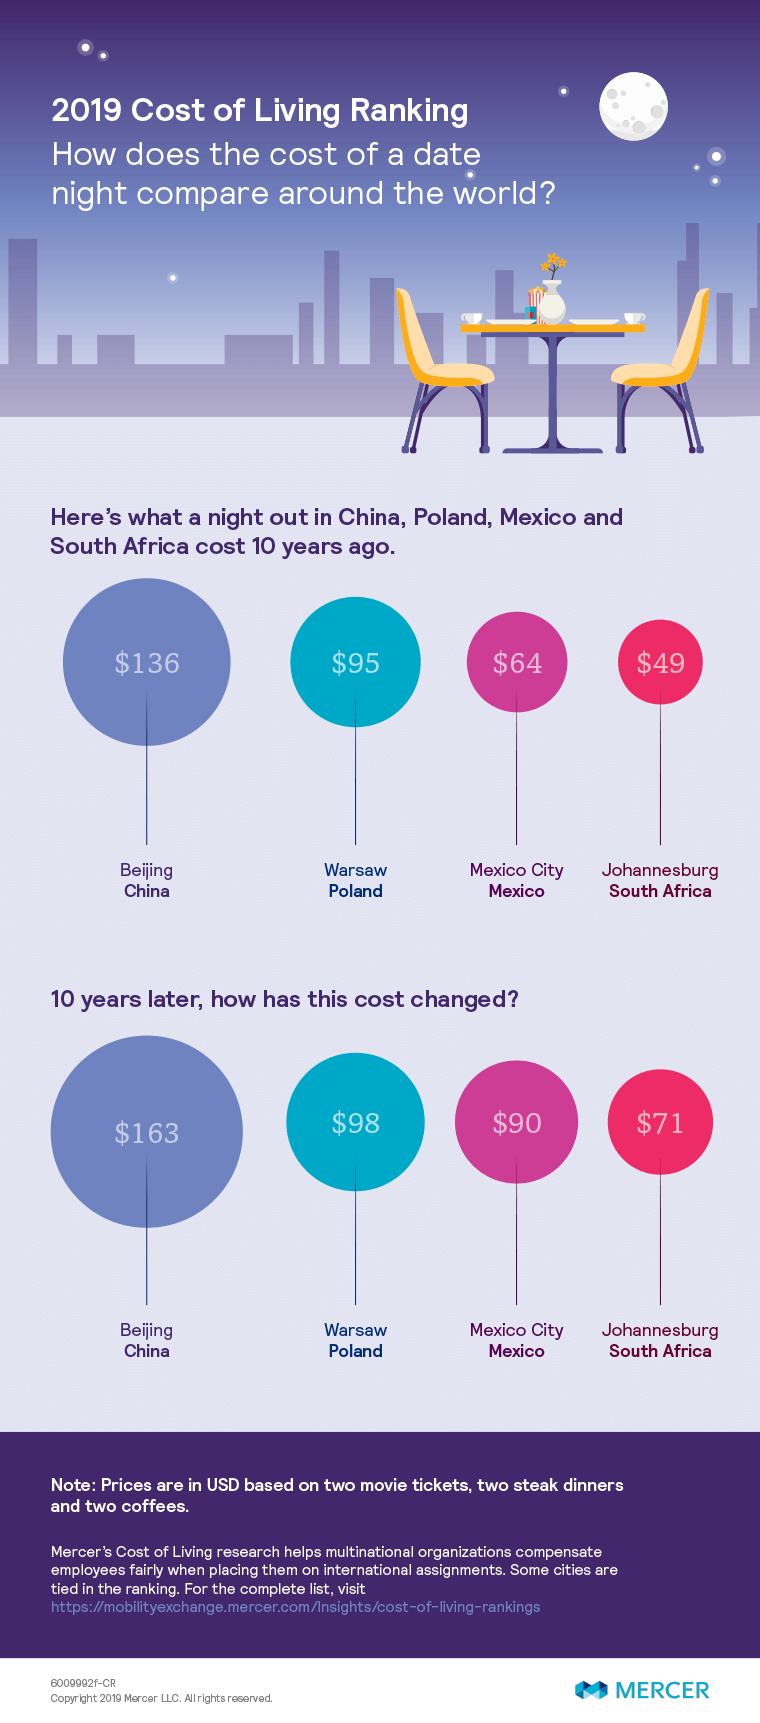 Chart showing the cost of a romantic date for two in four cities around the world